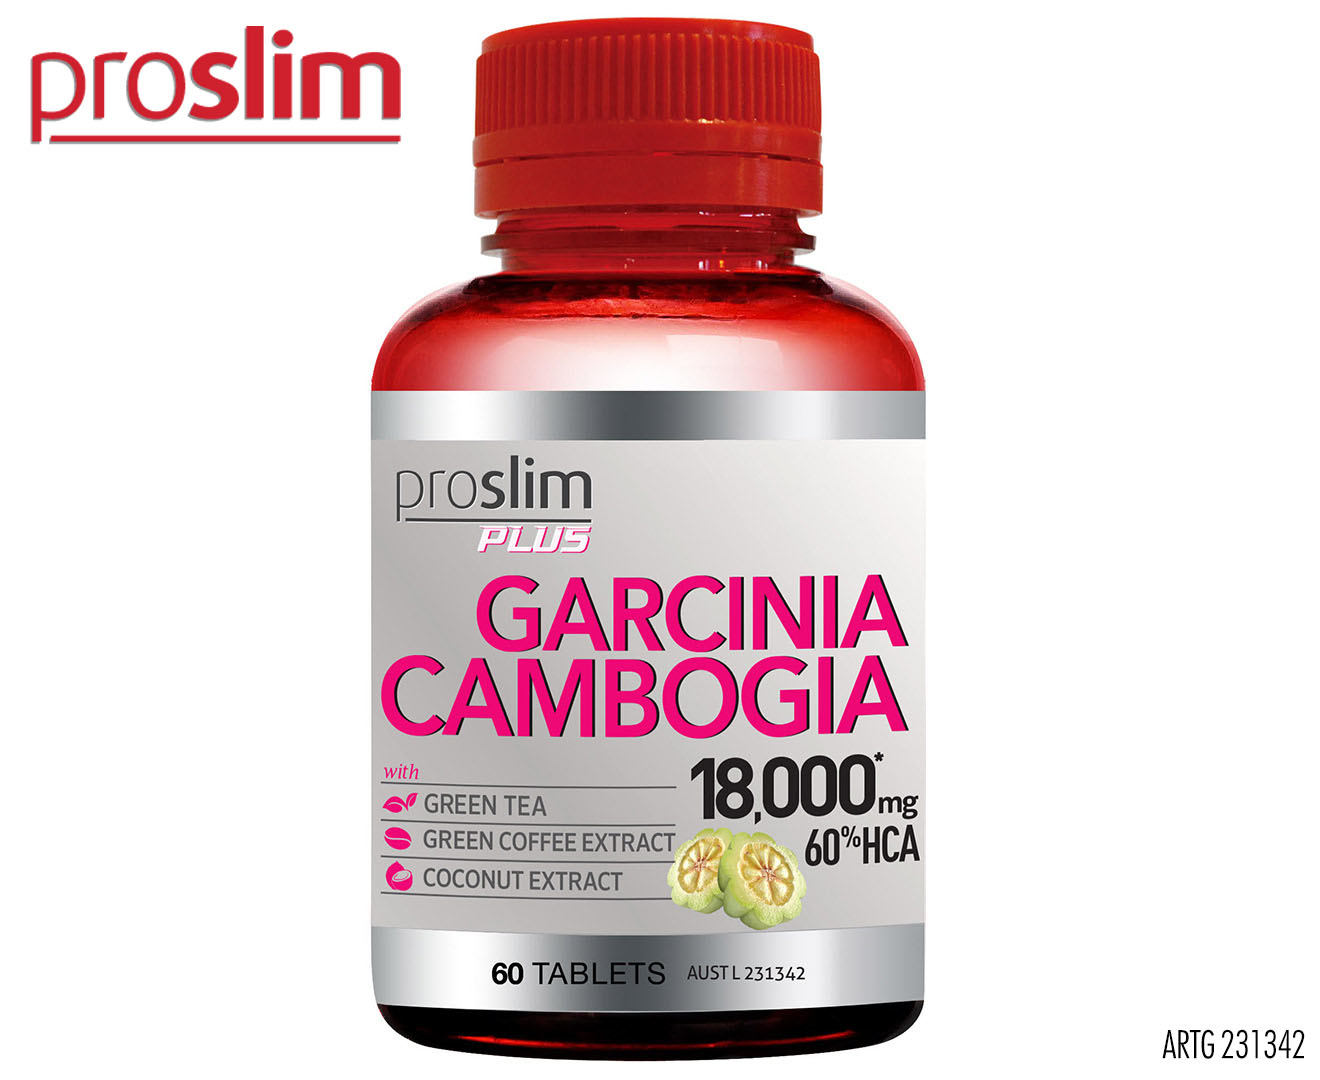 Proslim Plus Garcinia Cambogia 18000mg 60% HCA 60 Tabs | Great daily deals  at Australia's favourite superstore | Catch.com.au